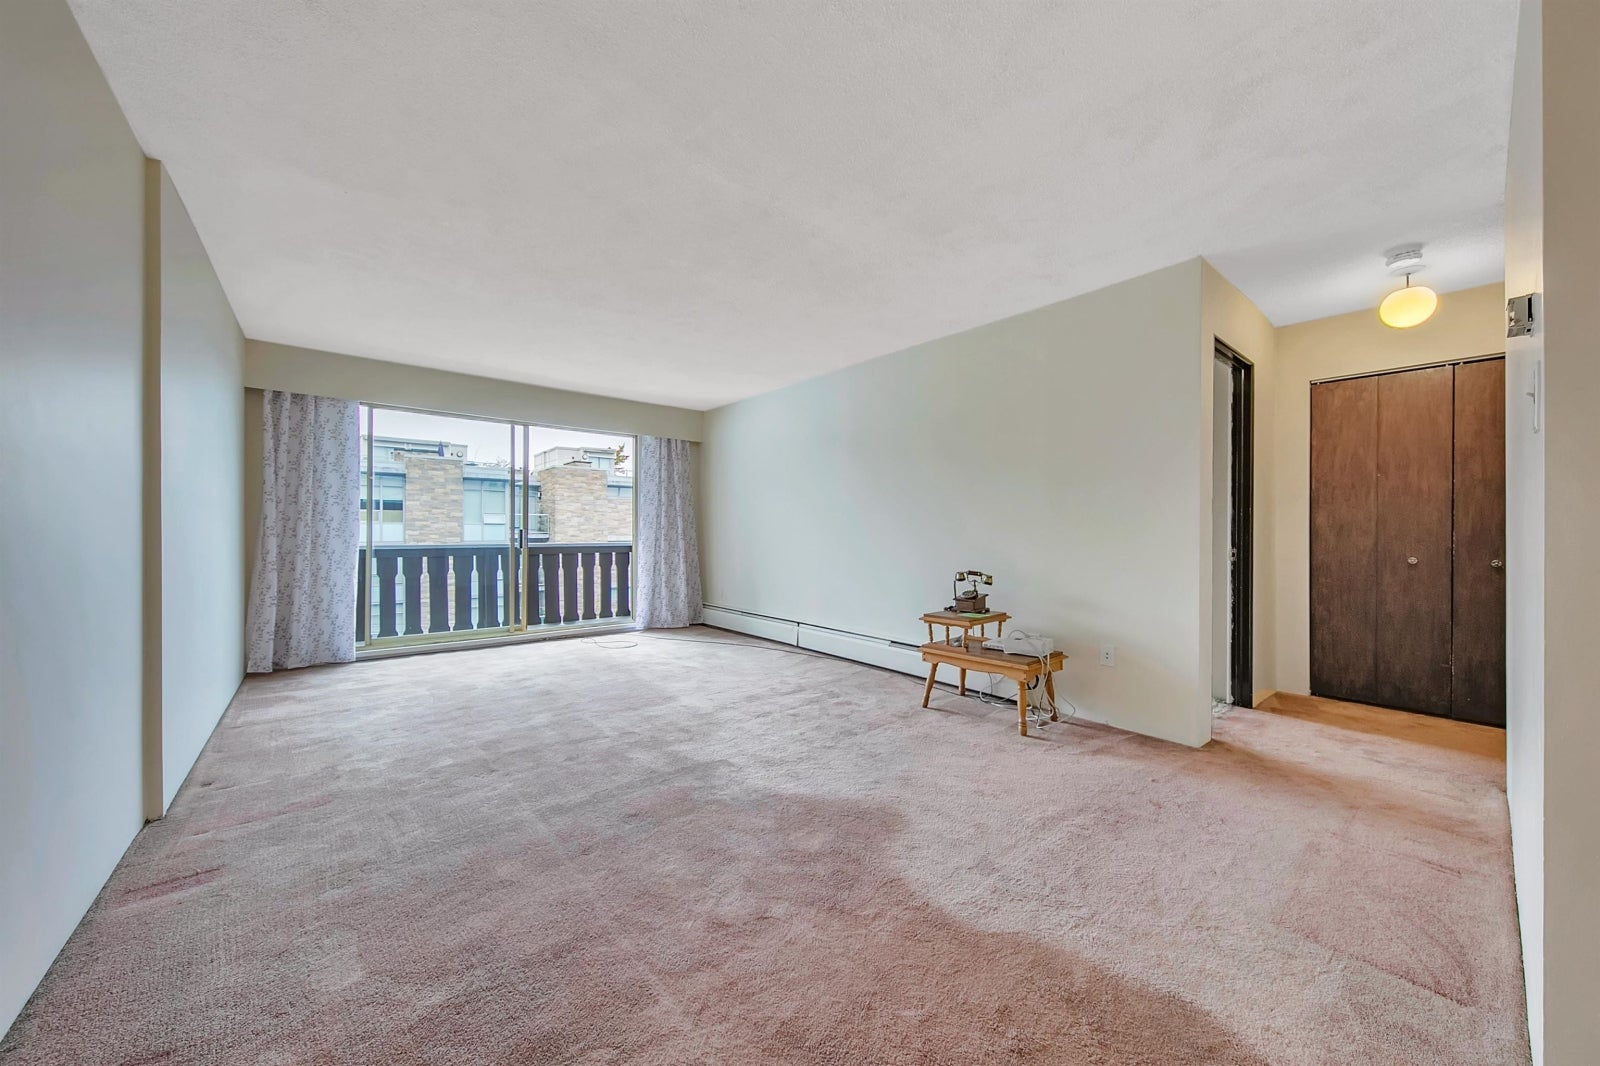 306 1345 CHESTERFIELD AVENUE - Central Lonsdale Apartment/Condo for sale, 1 Bedroom (R2622121) #8